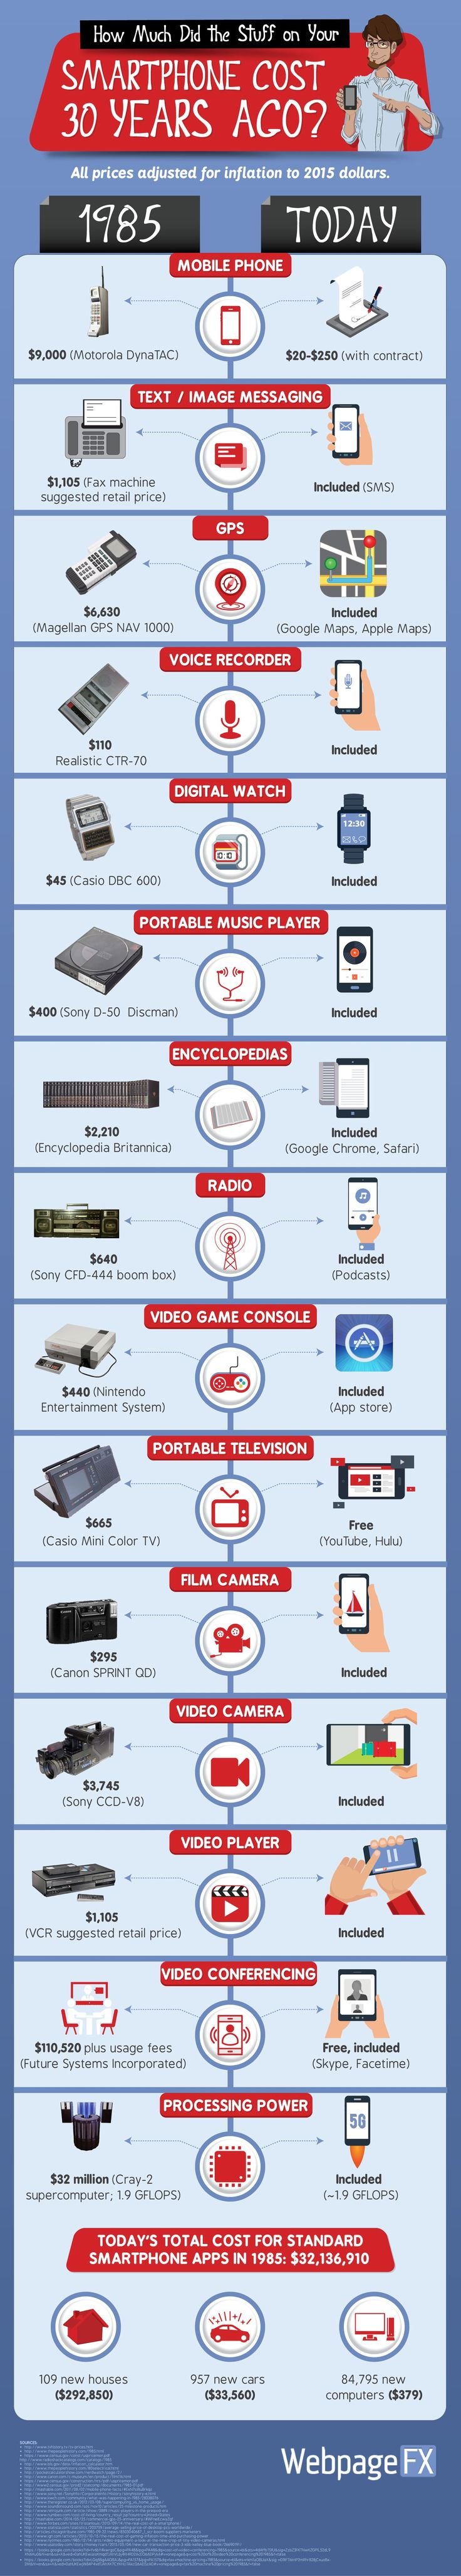 How much did the stuff on your #smartphone cost 30 years ago? #infographic